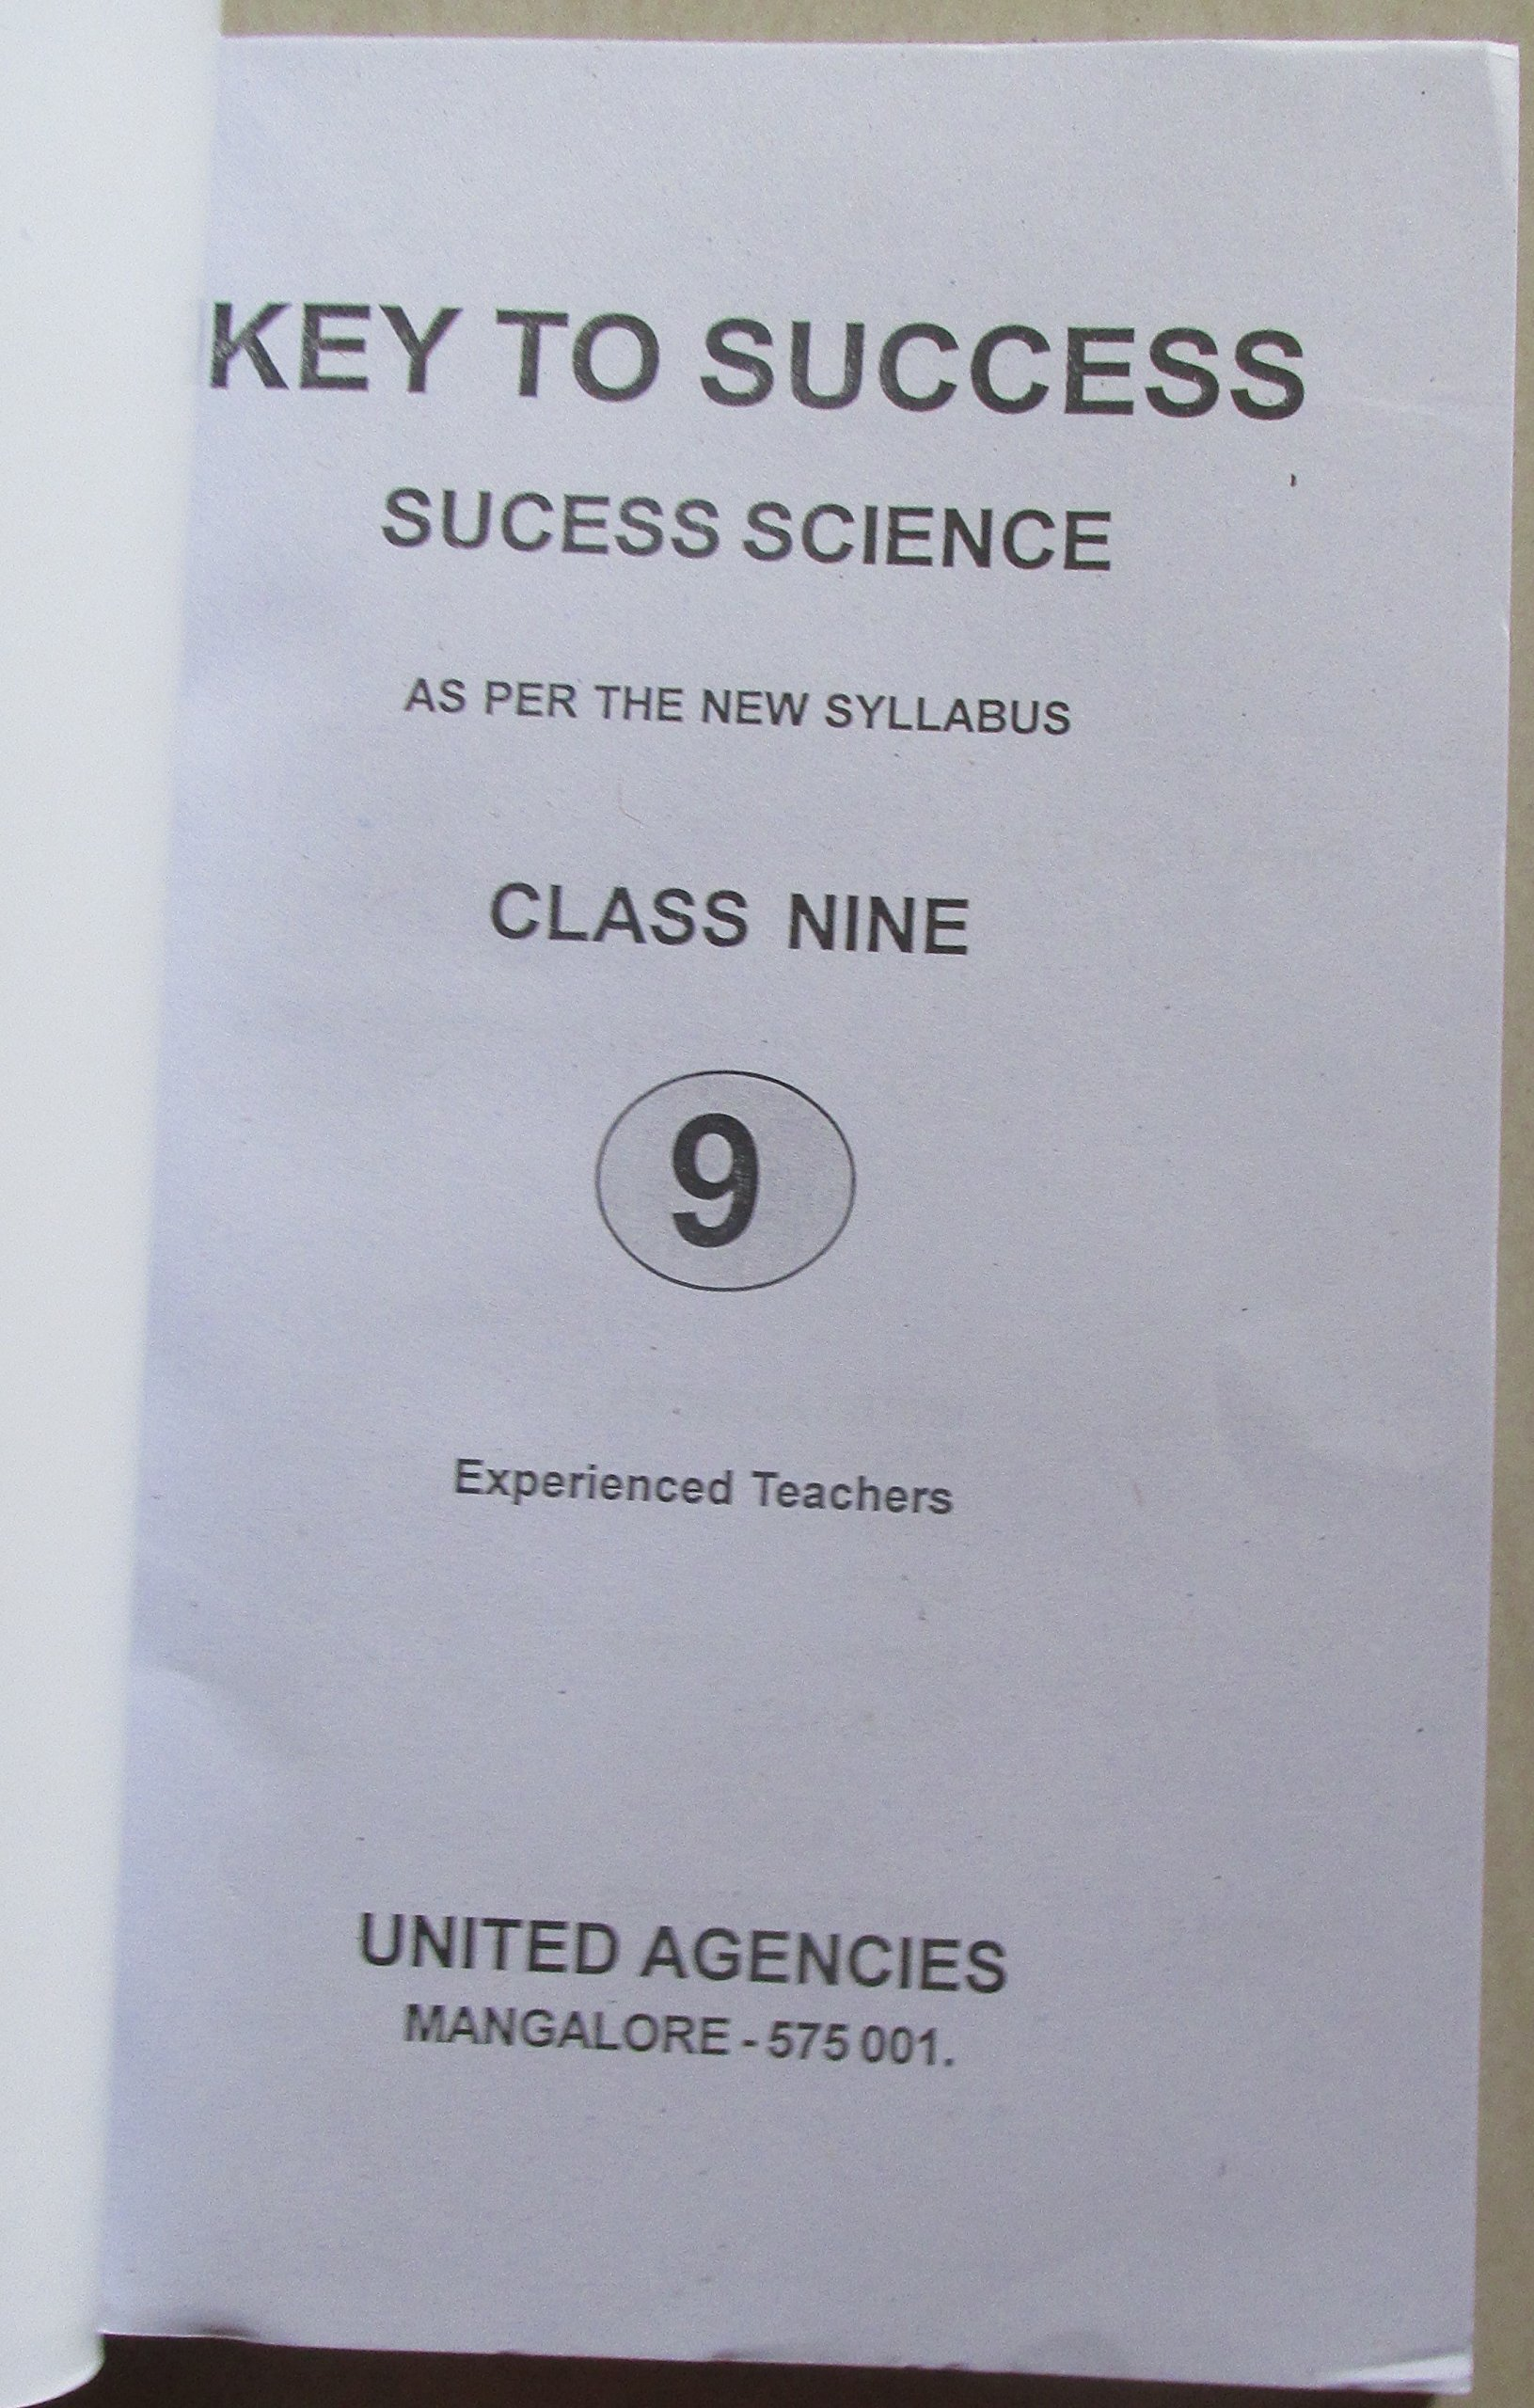 Key to Success - Complete Guide for 9th Std Karnataka English Medium -  Maths+Science: Amazon.in: Books